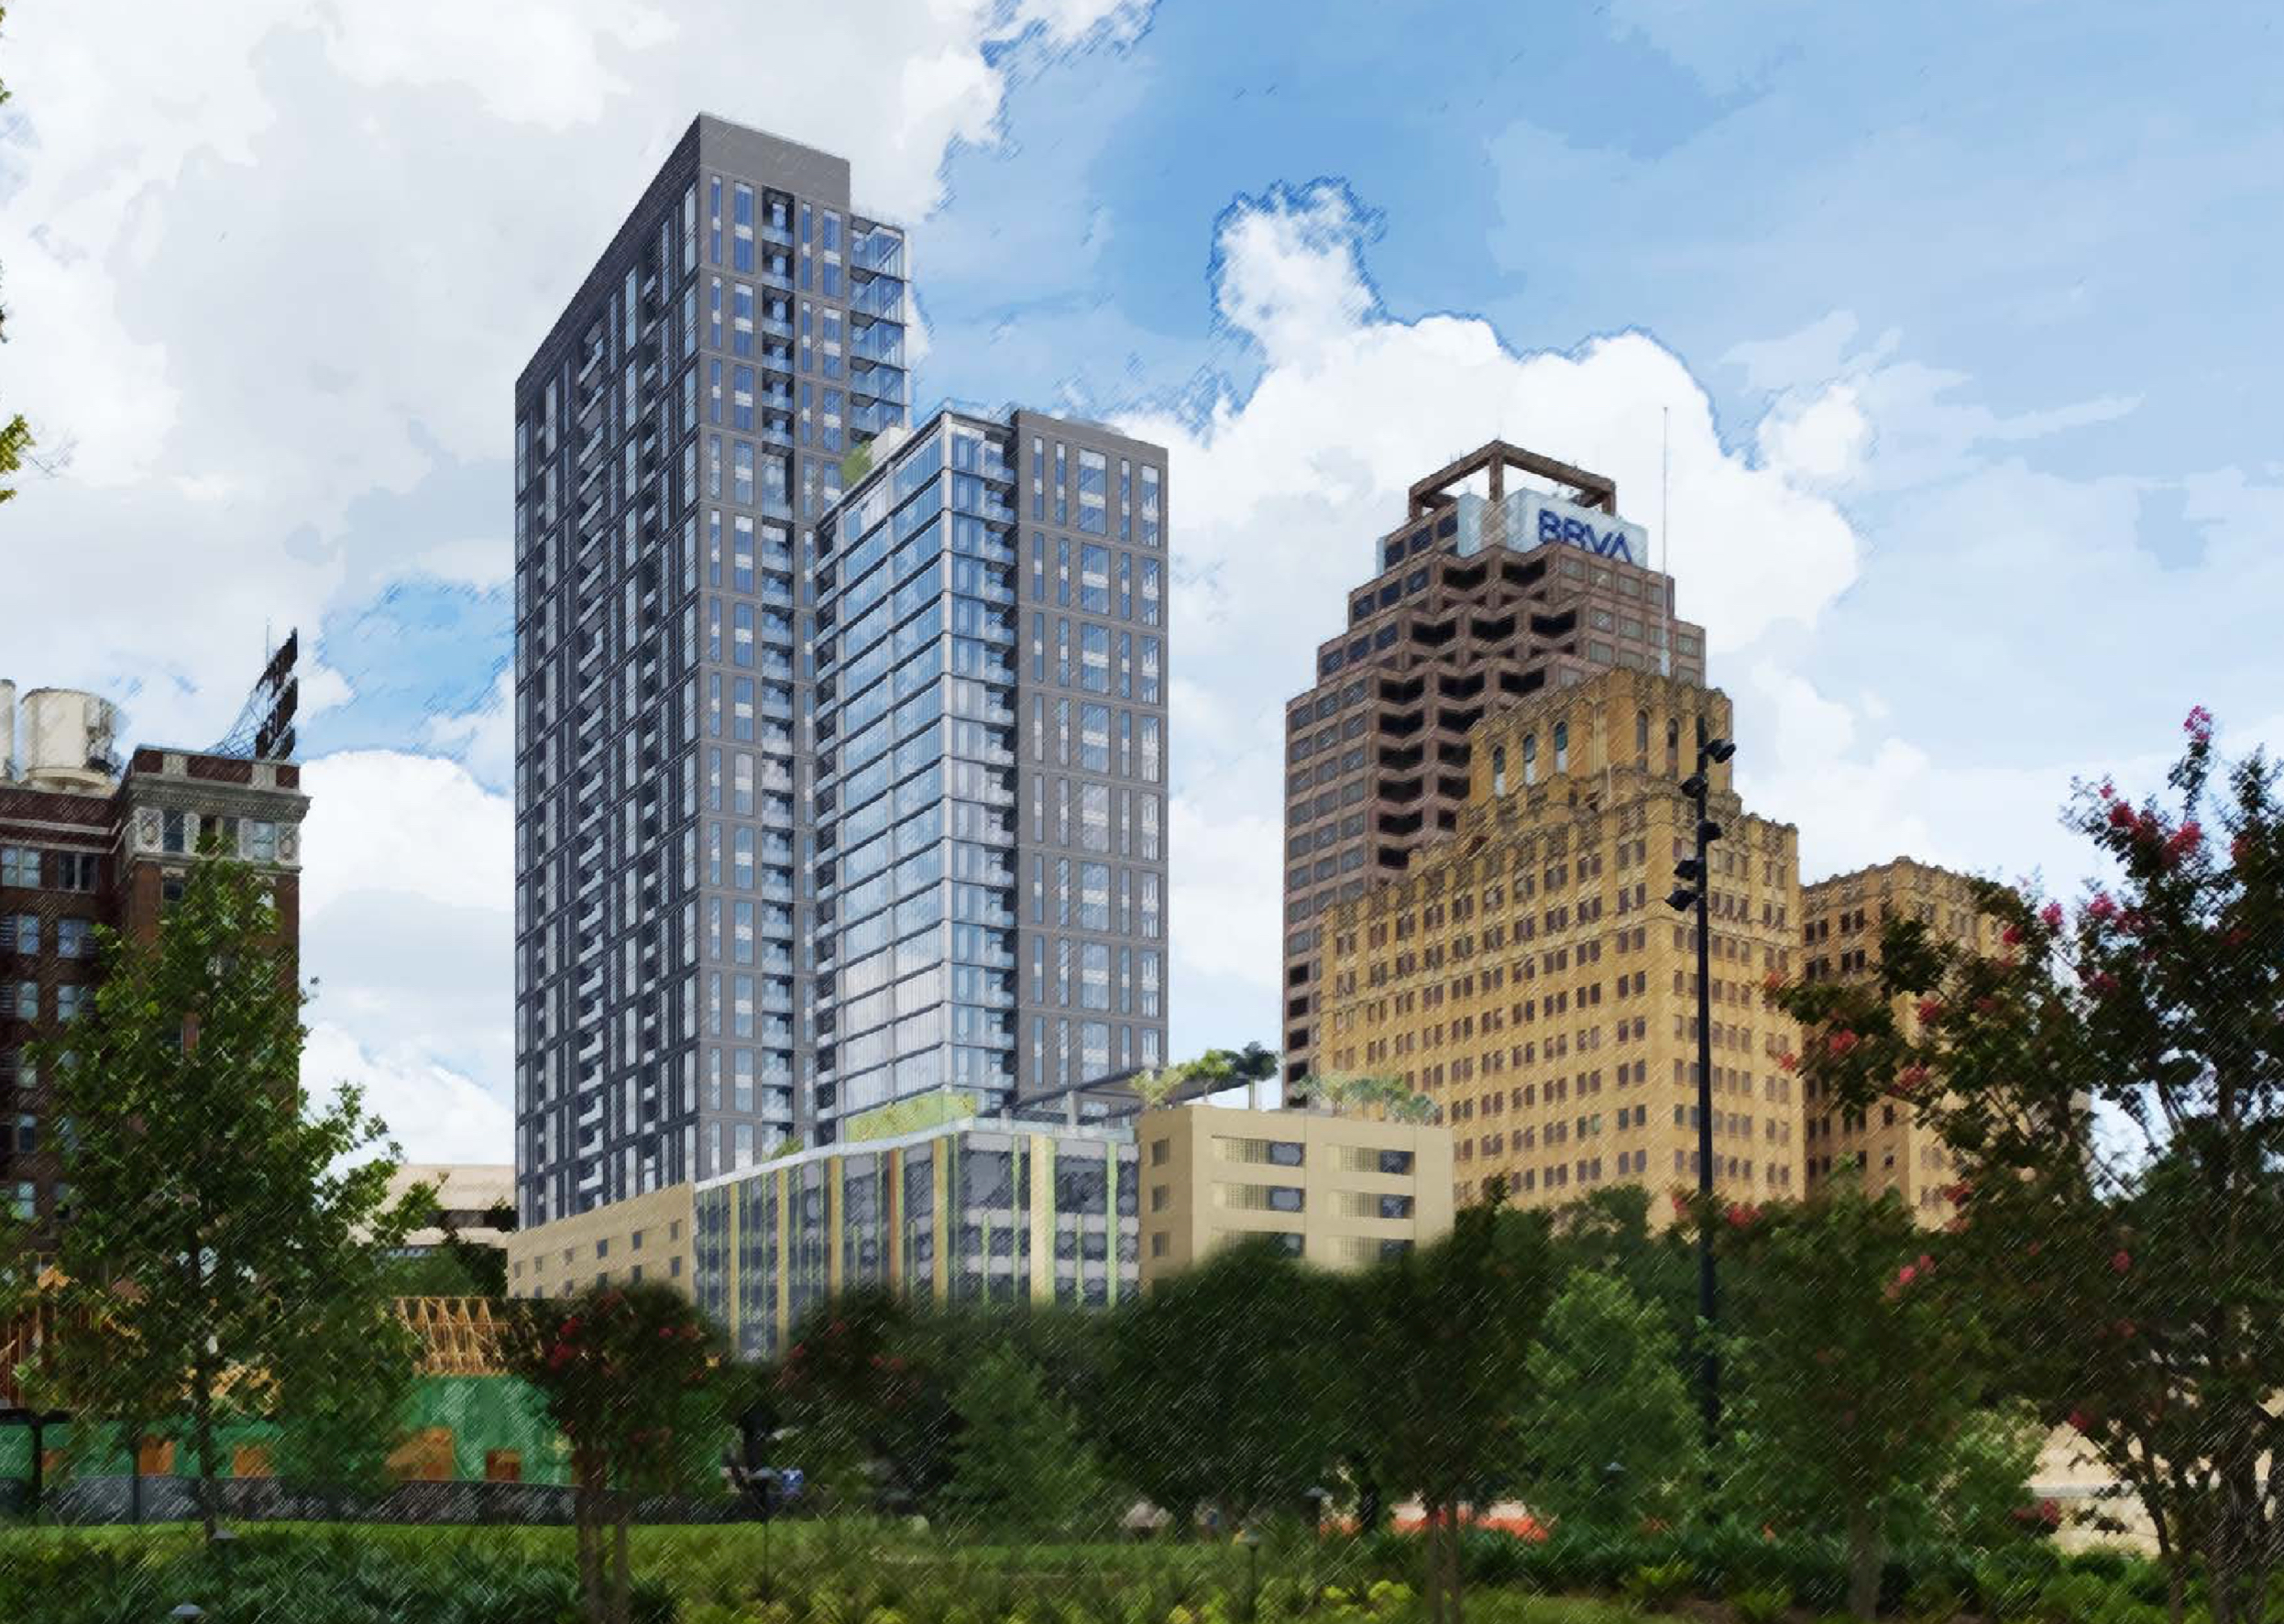 A 32-story residential tower received conceptual approval from the Historic and Design Review Board.